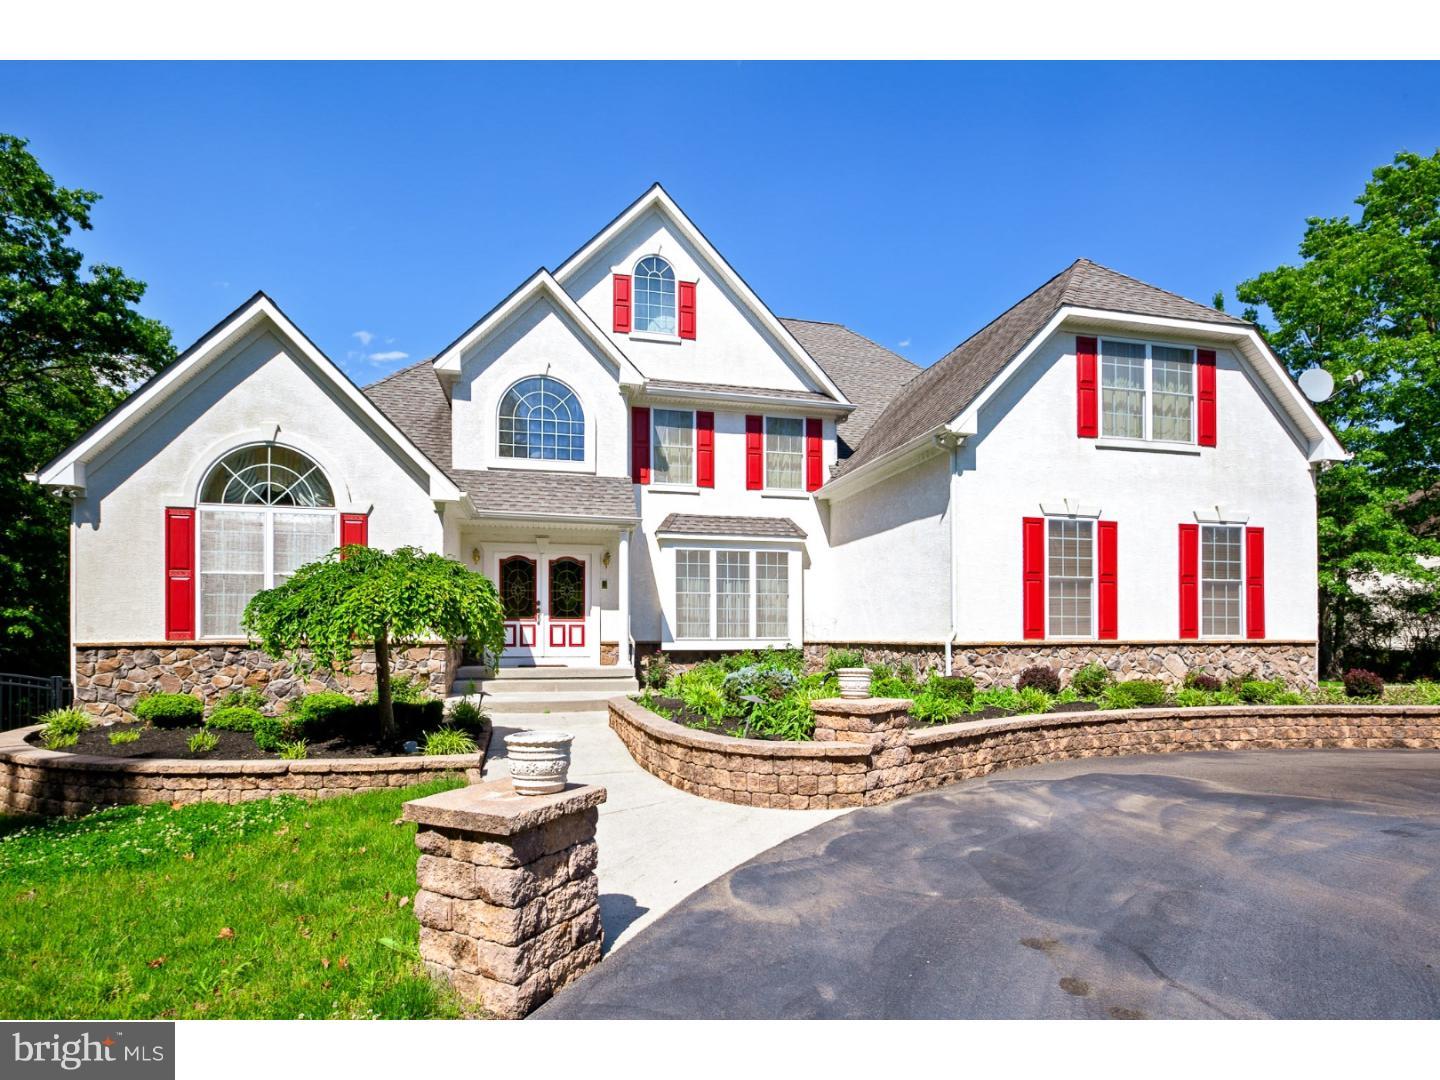 Single Family Home for Sale at 112 RUNNING DEER Trail Elmer, New Jersey 08318 United States